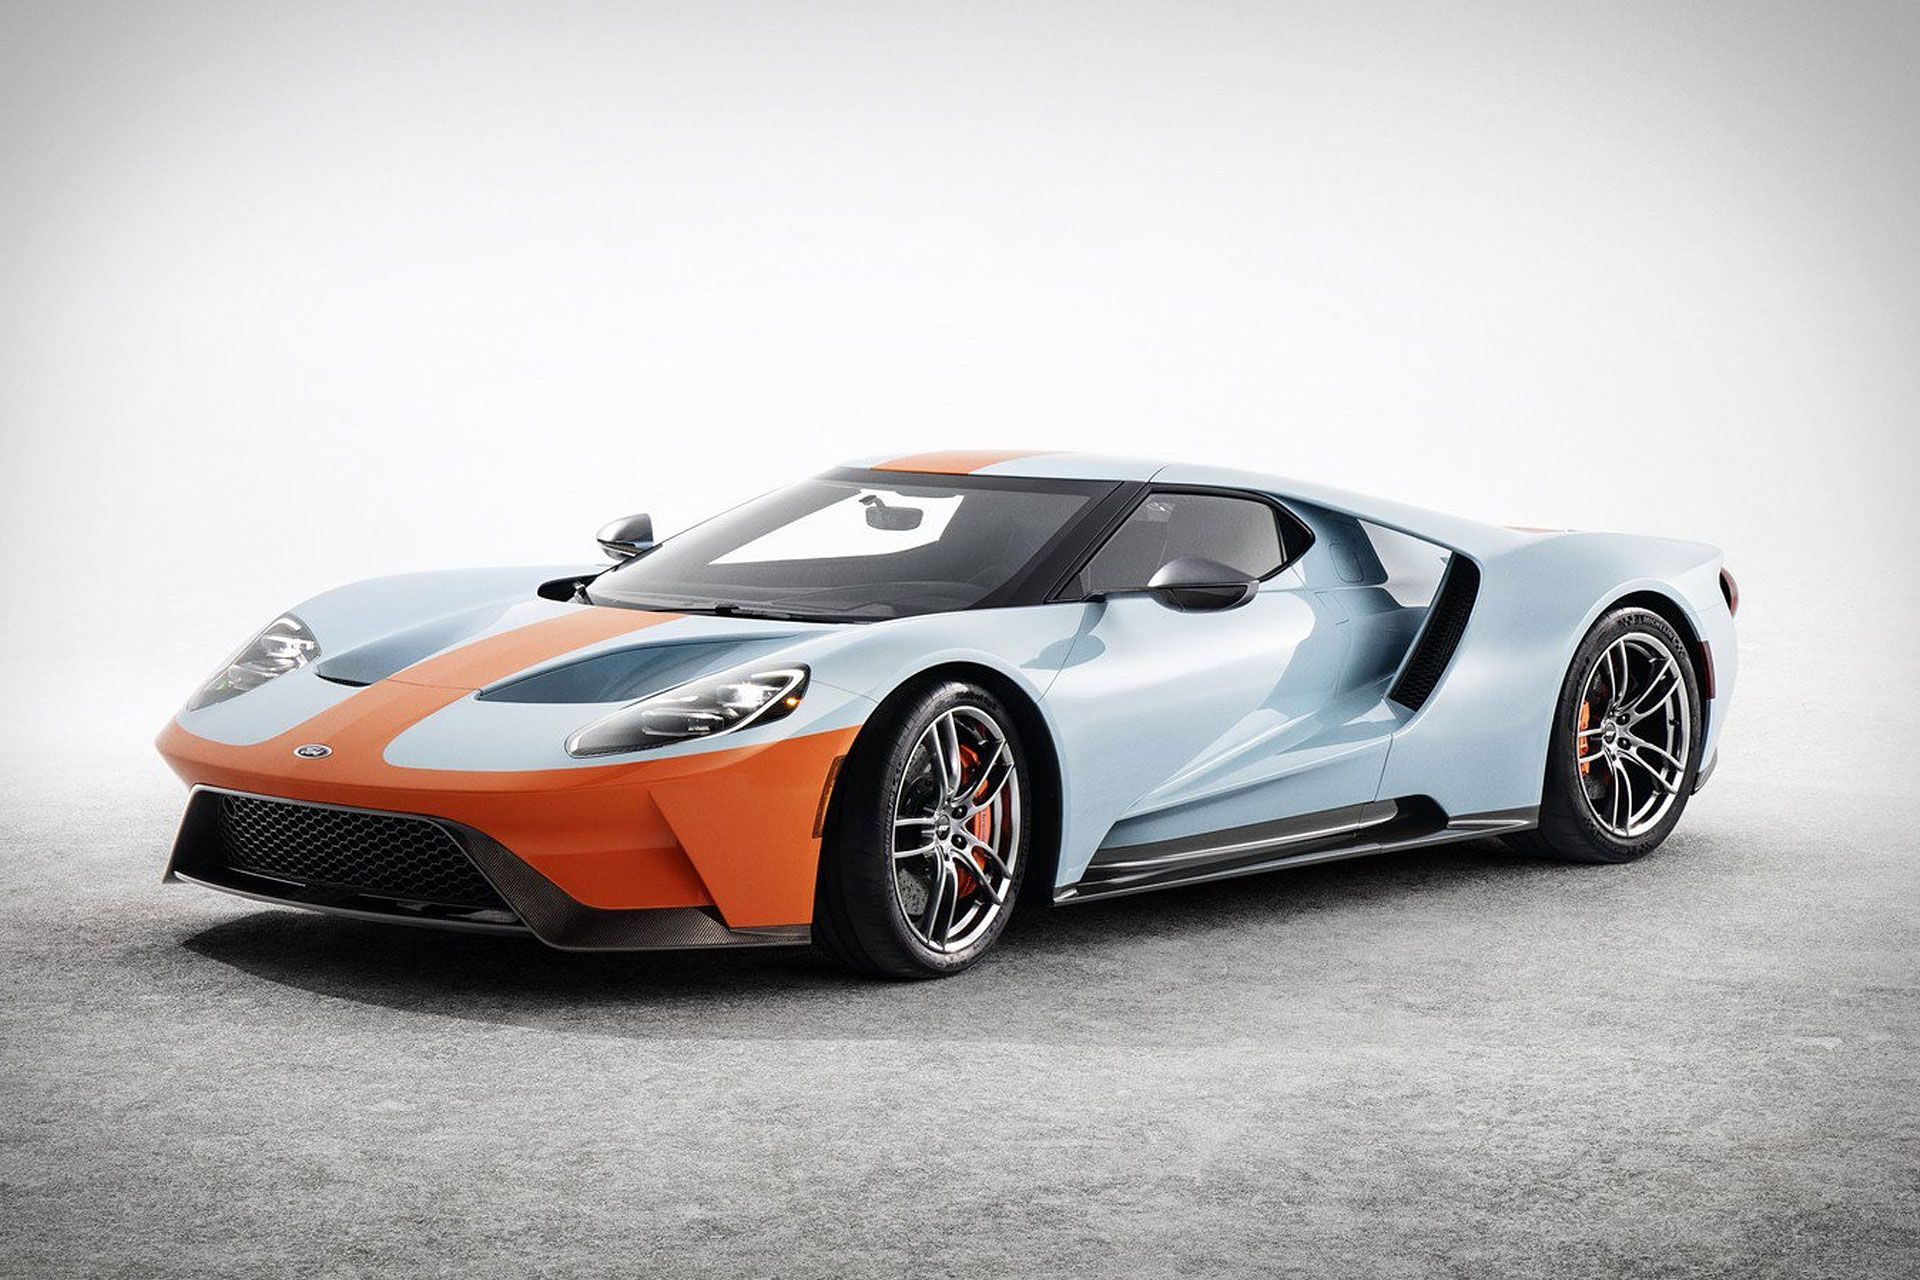 2019 Ford Gt Gulf Heritage Edition Vin 001 Ford Gt Gulf Ford Gt Ford Gt40